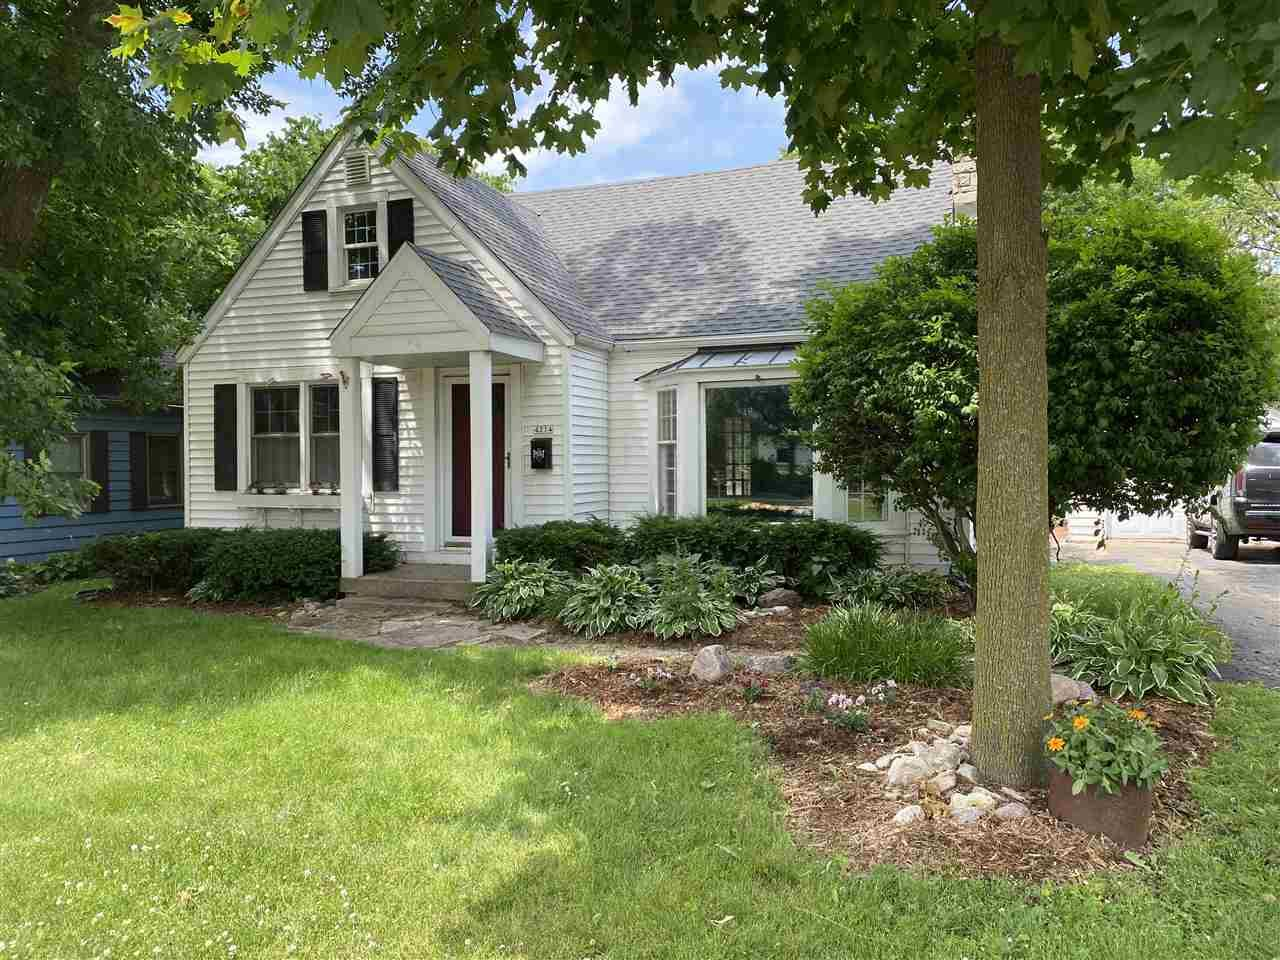 4214 W Mineral Point Rd, Madison, WI 53705 - #: 1886389